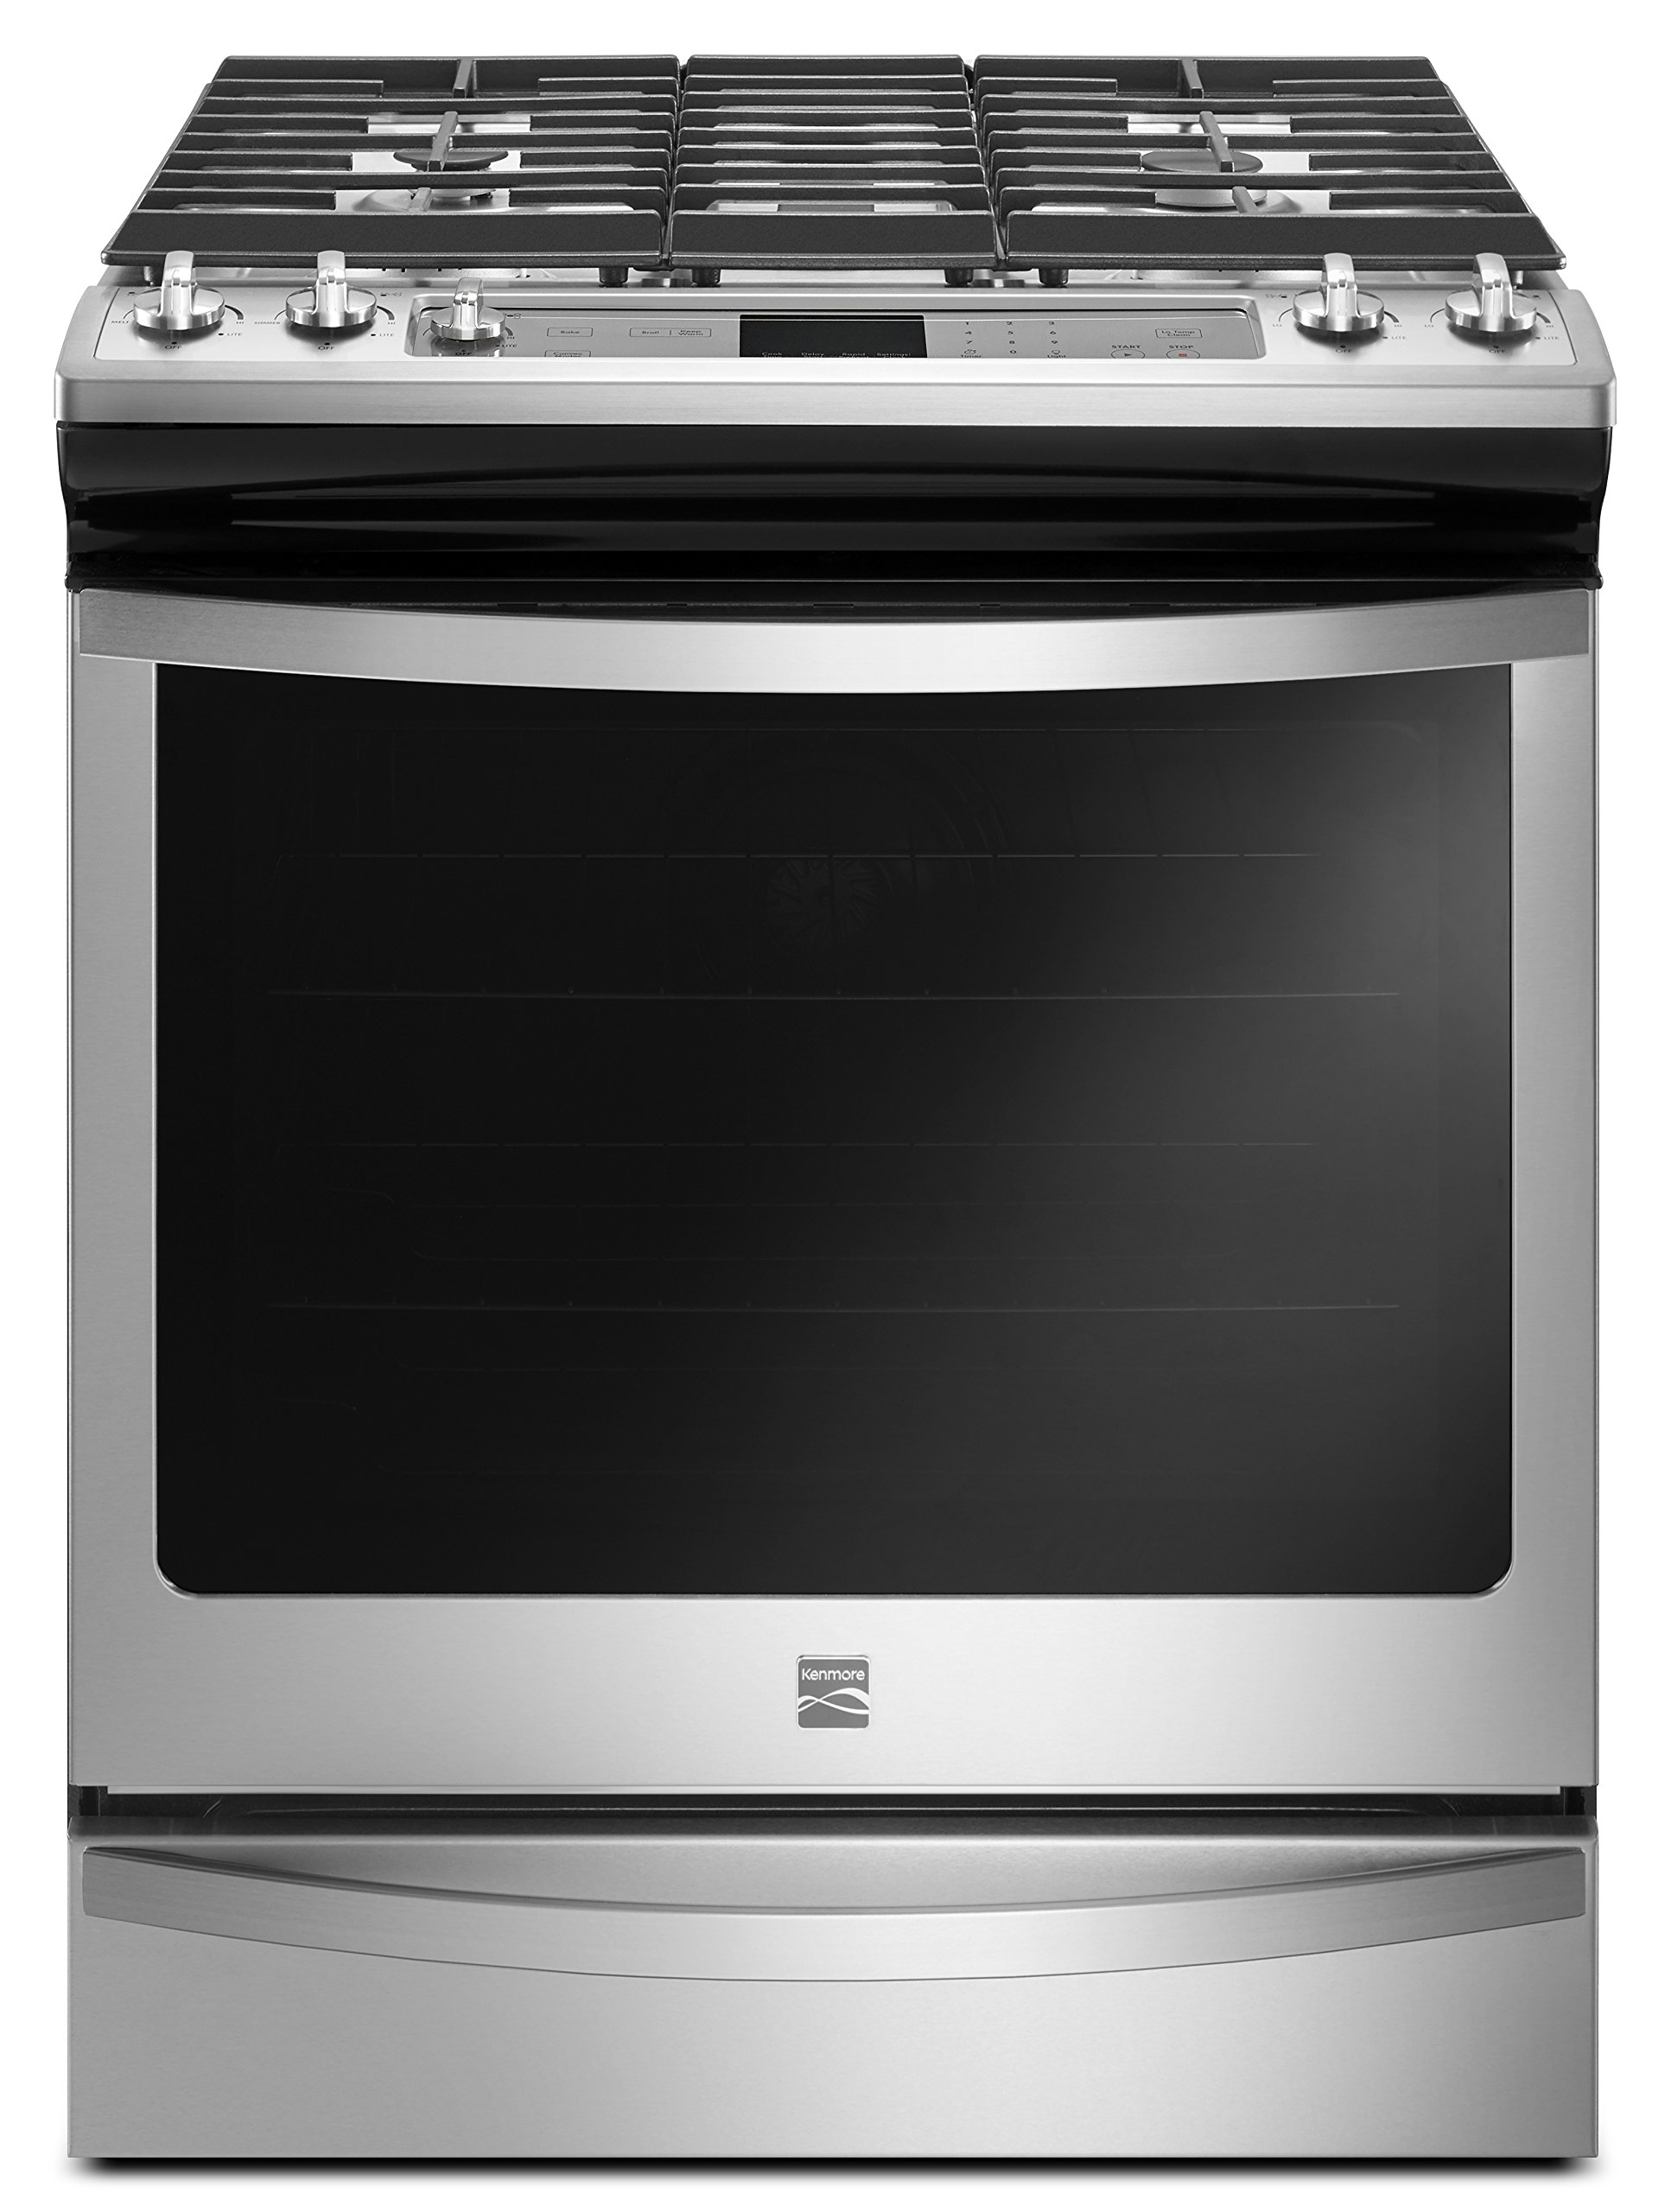 Kenmore 75123 5.8 cu. ft. Gas Range in Stainless Steel, includes delivery and hookup (Available in select cities only)